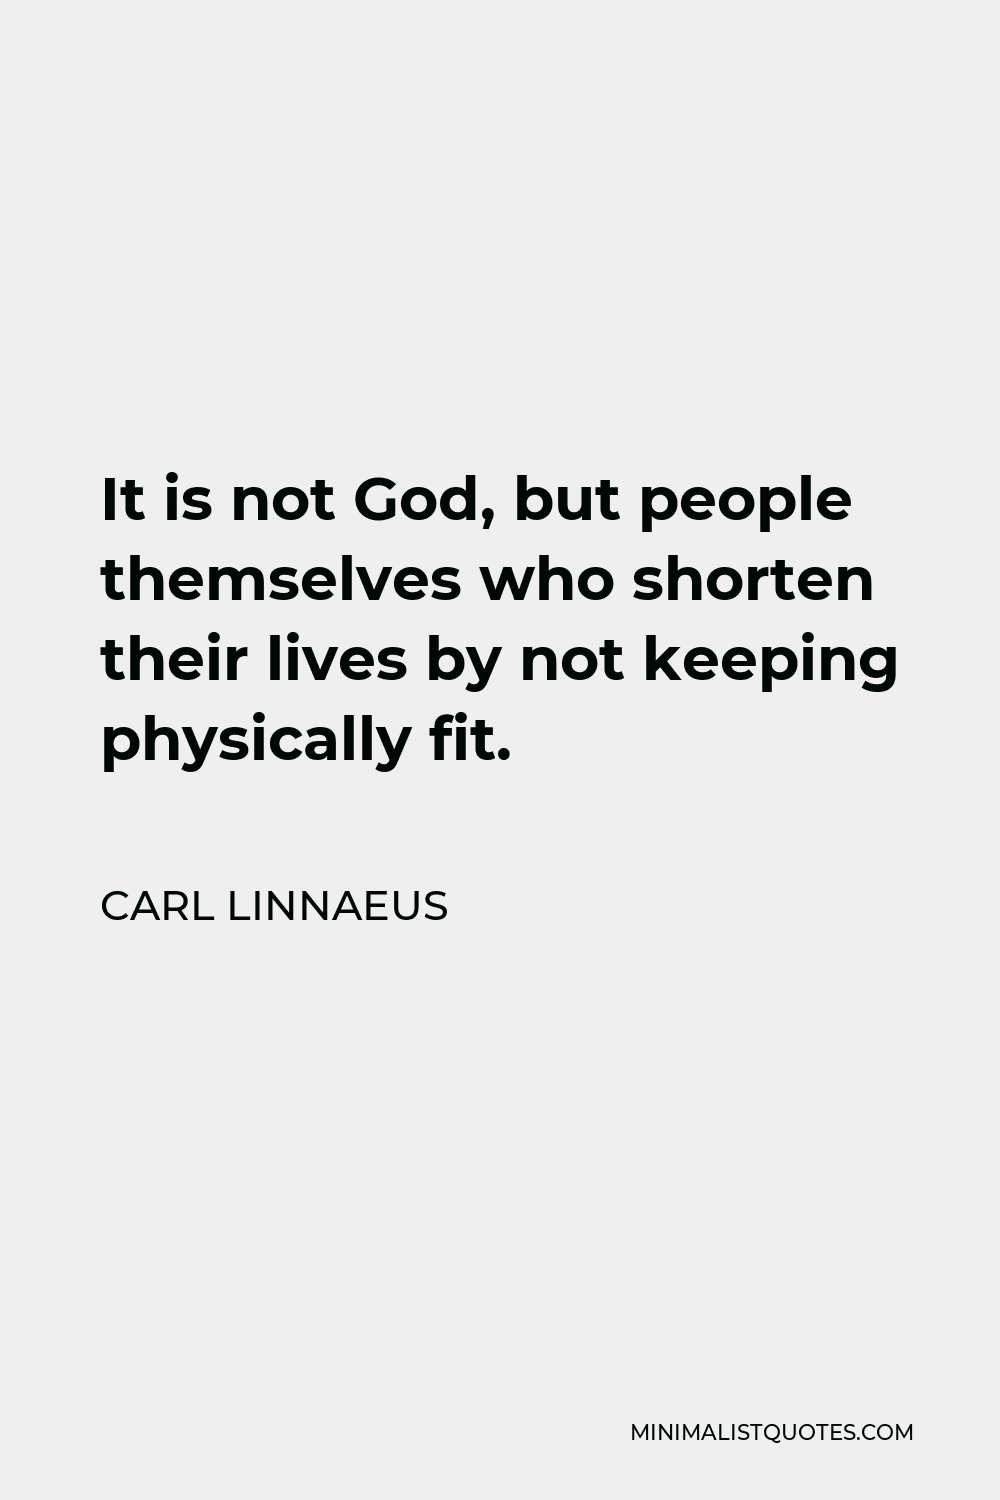 Carl Linnaeus Quote - It is not God, but people themselves who shorten their lives by not keeping physically fit.